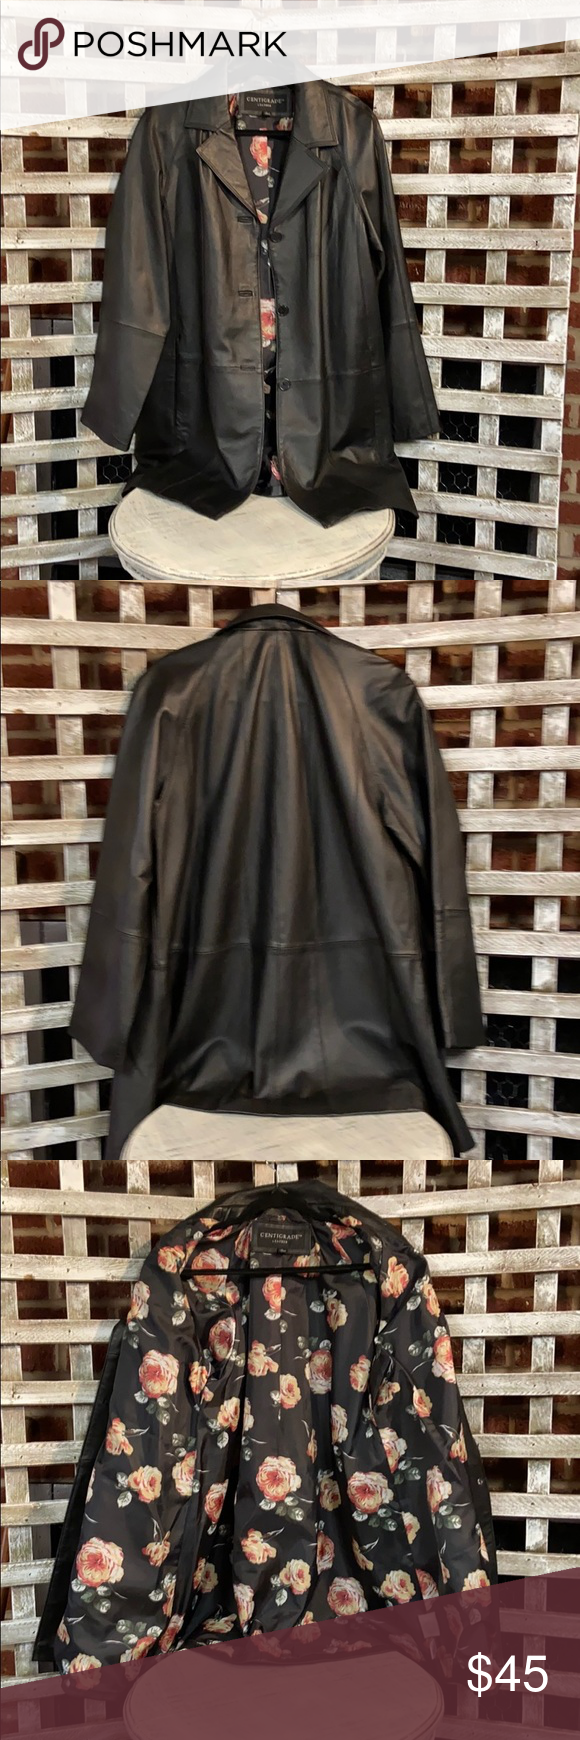 Centigrade Leather Jacket Beautifully Lined Leather Jacket Nwt Centigrade Jackets Coats Blazers Fashion Clothes Design Fashion Tips [ 1740 x 580 Pixel ]